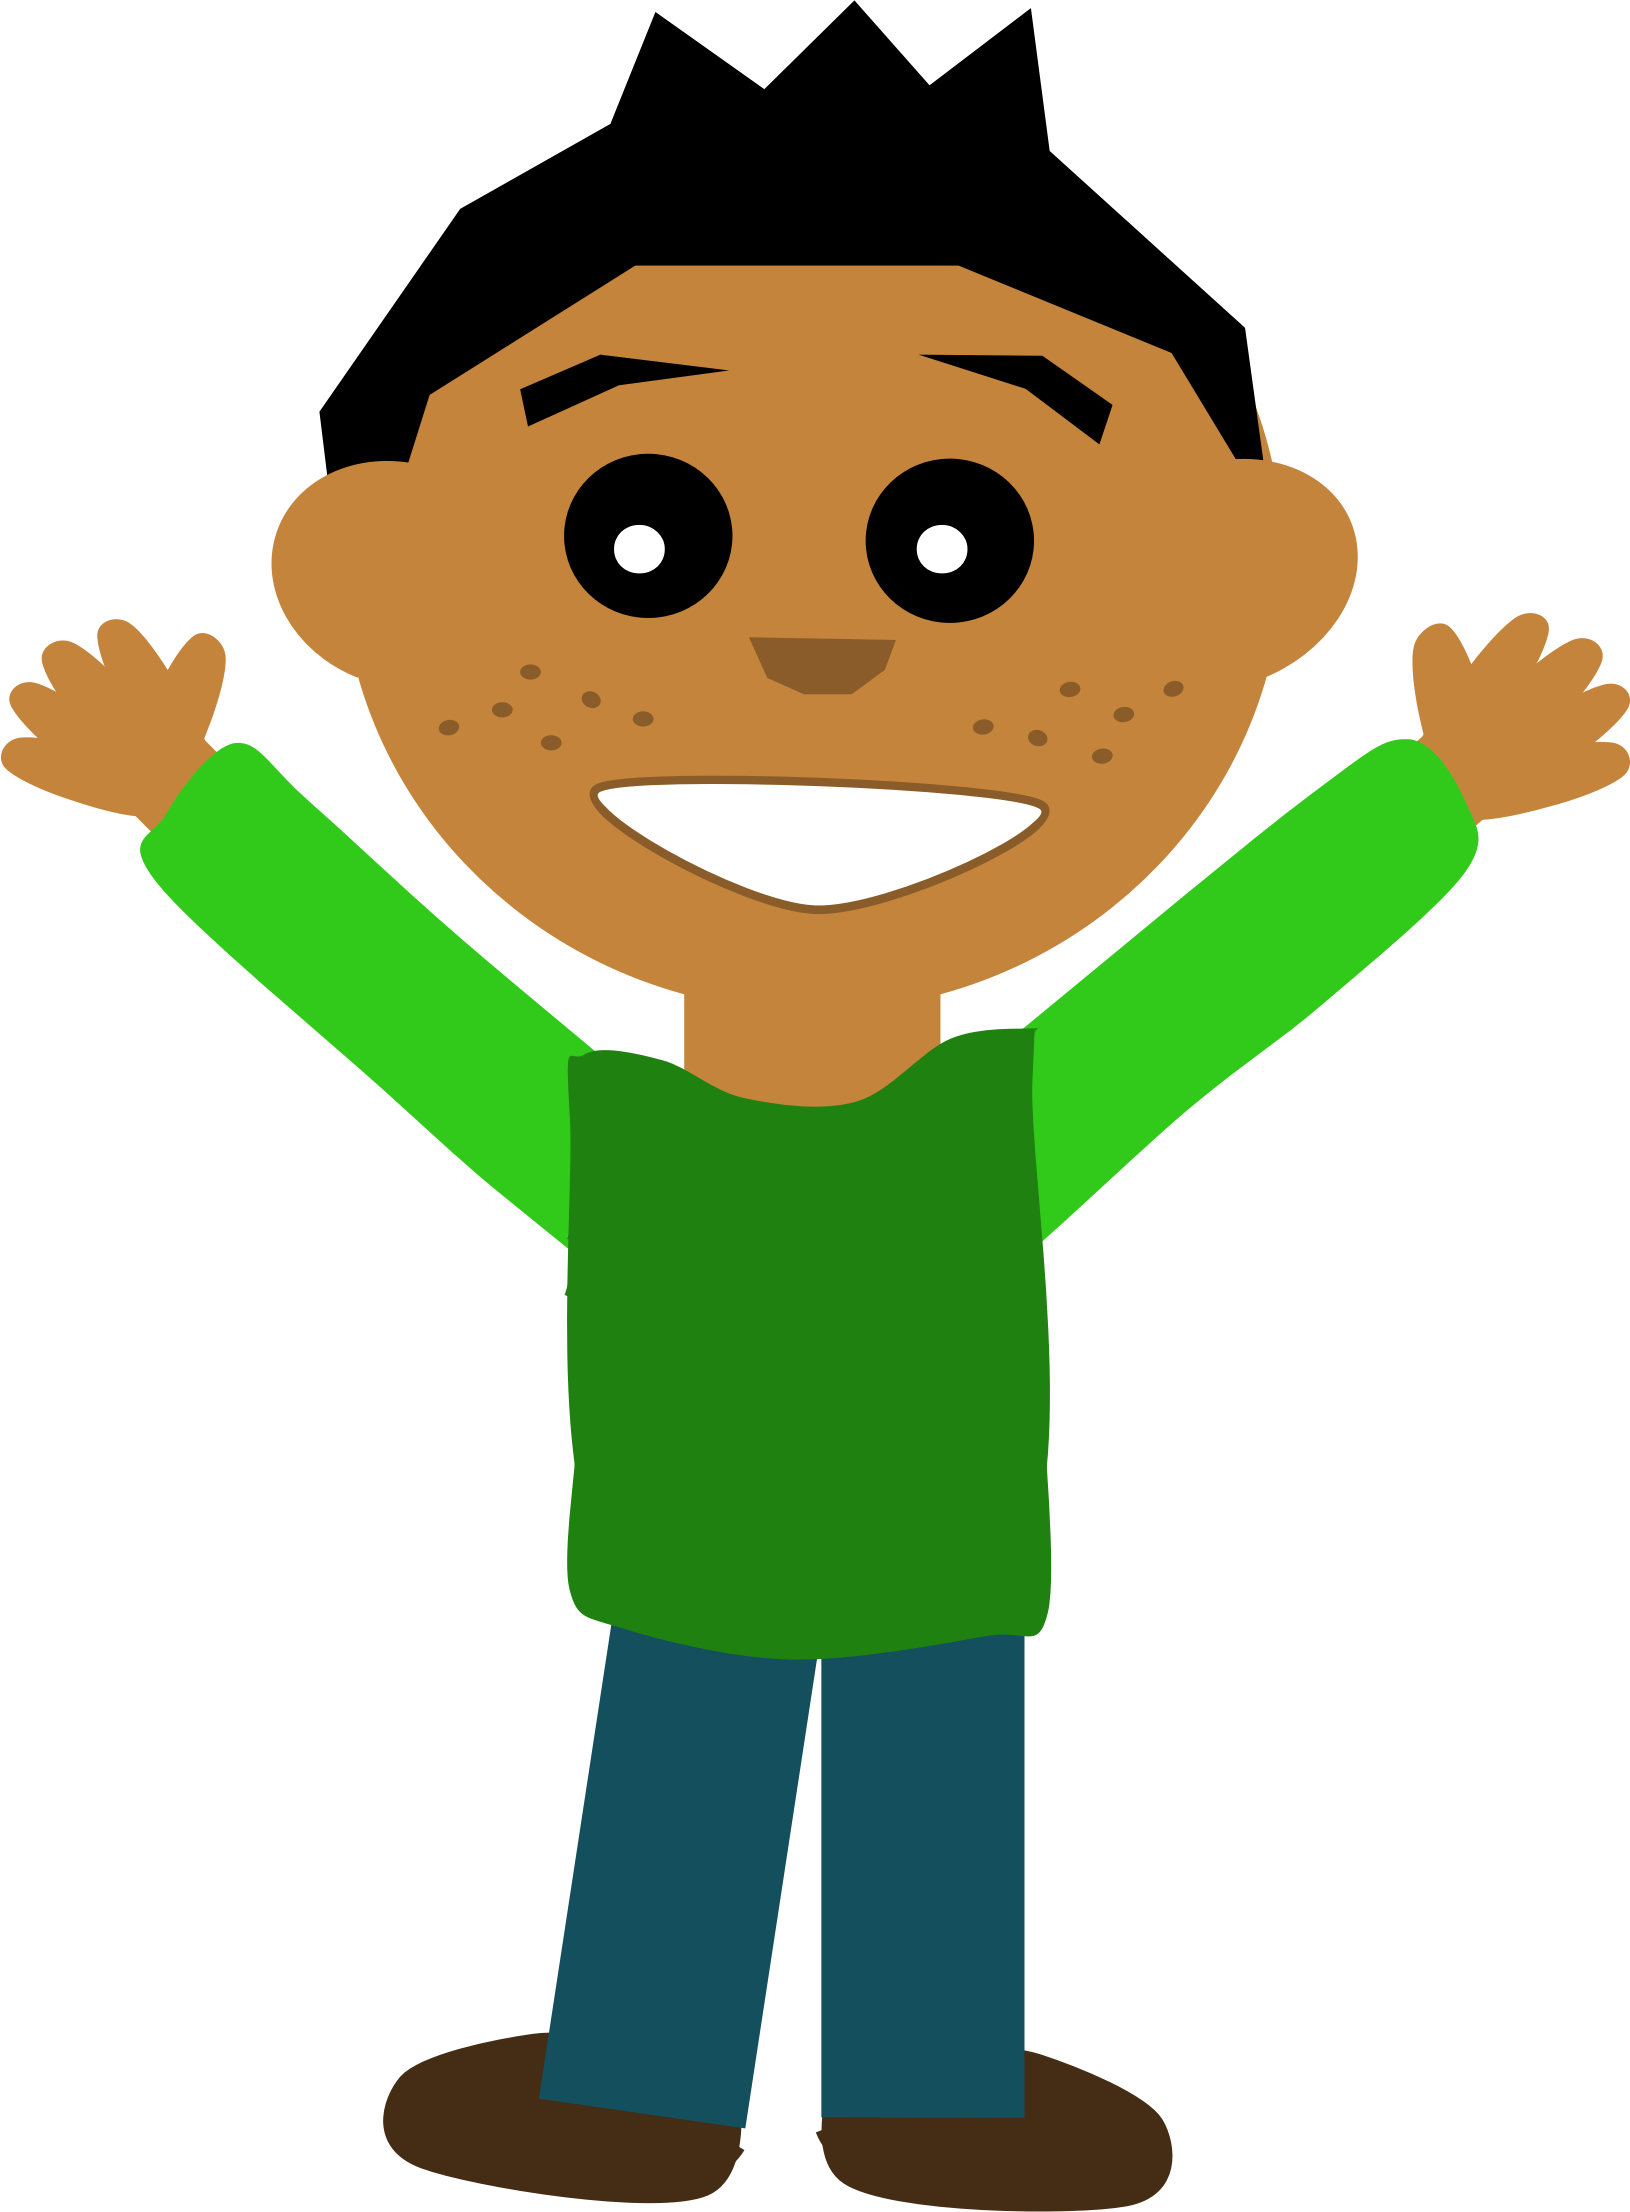 free Guy clipart. Happy big image png